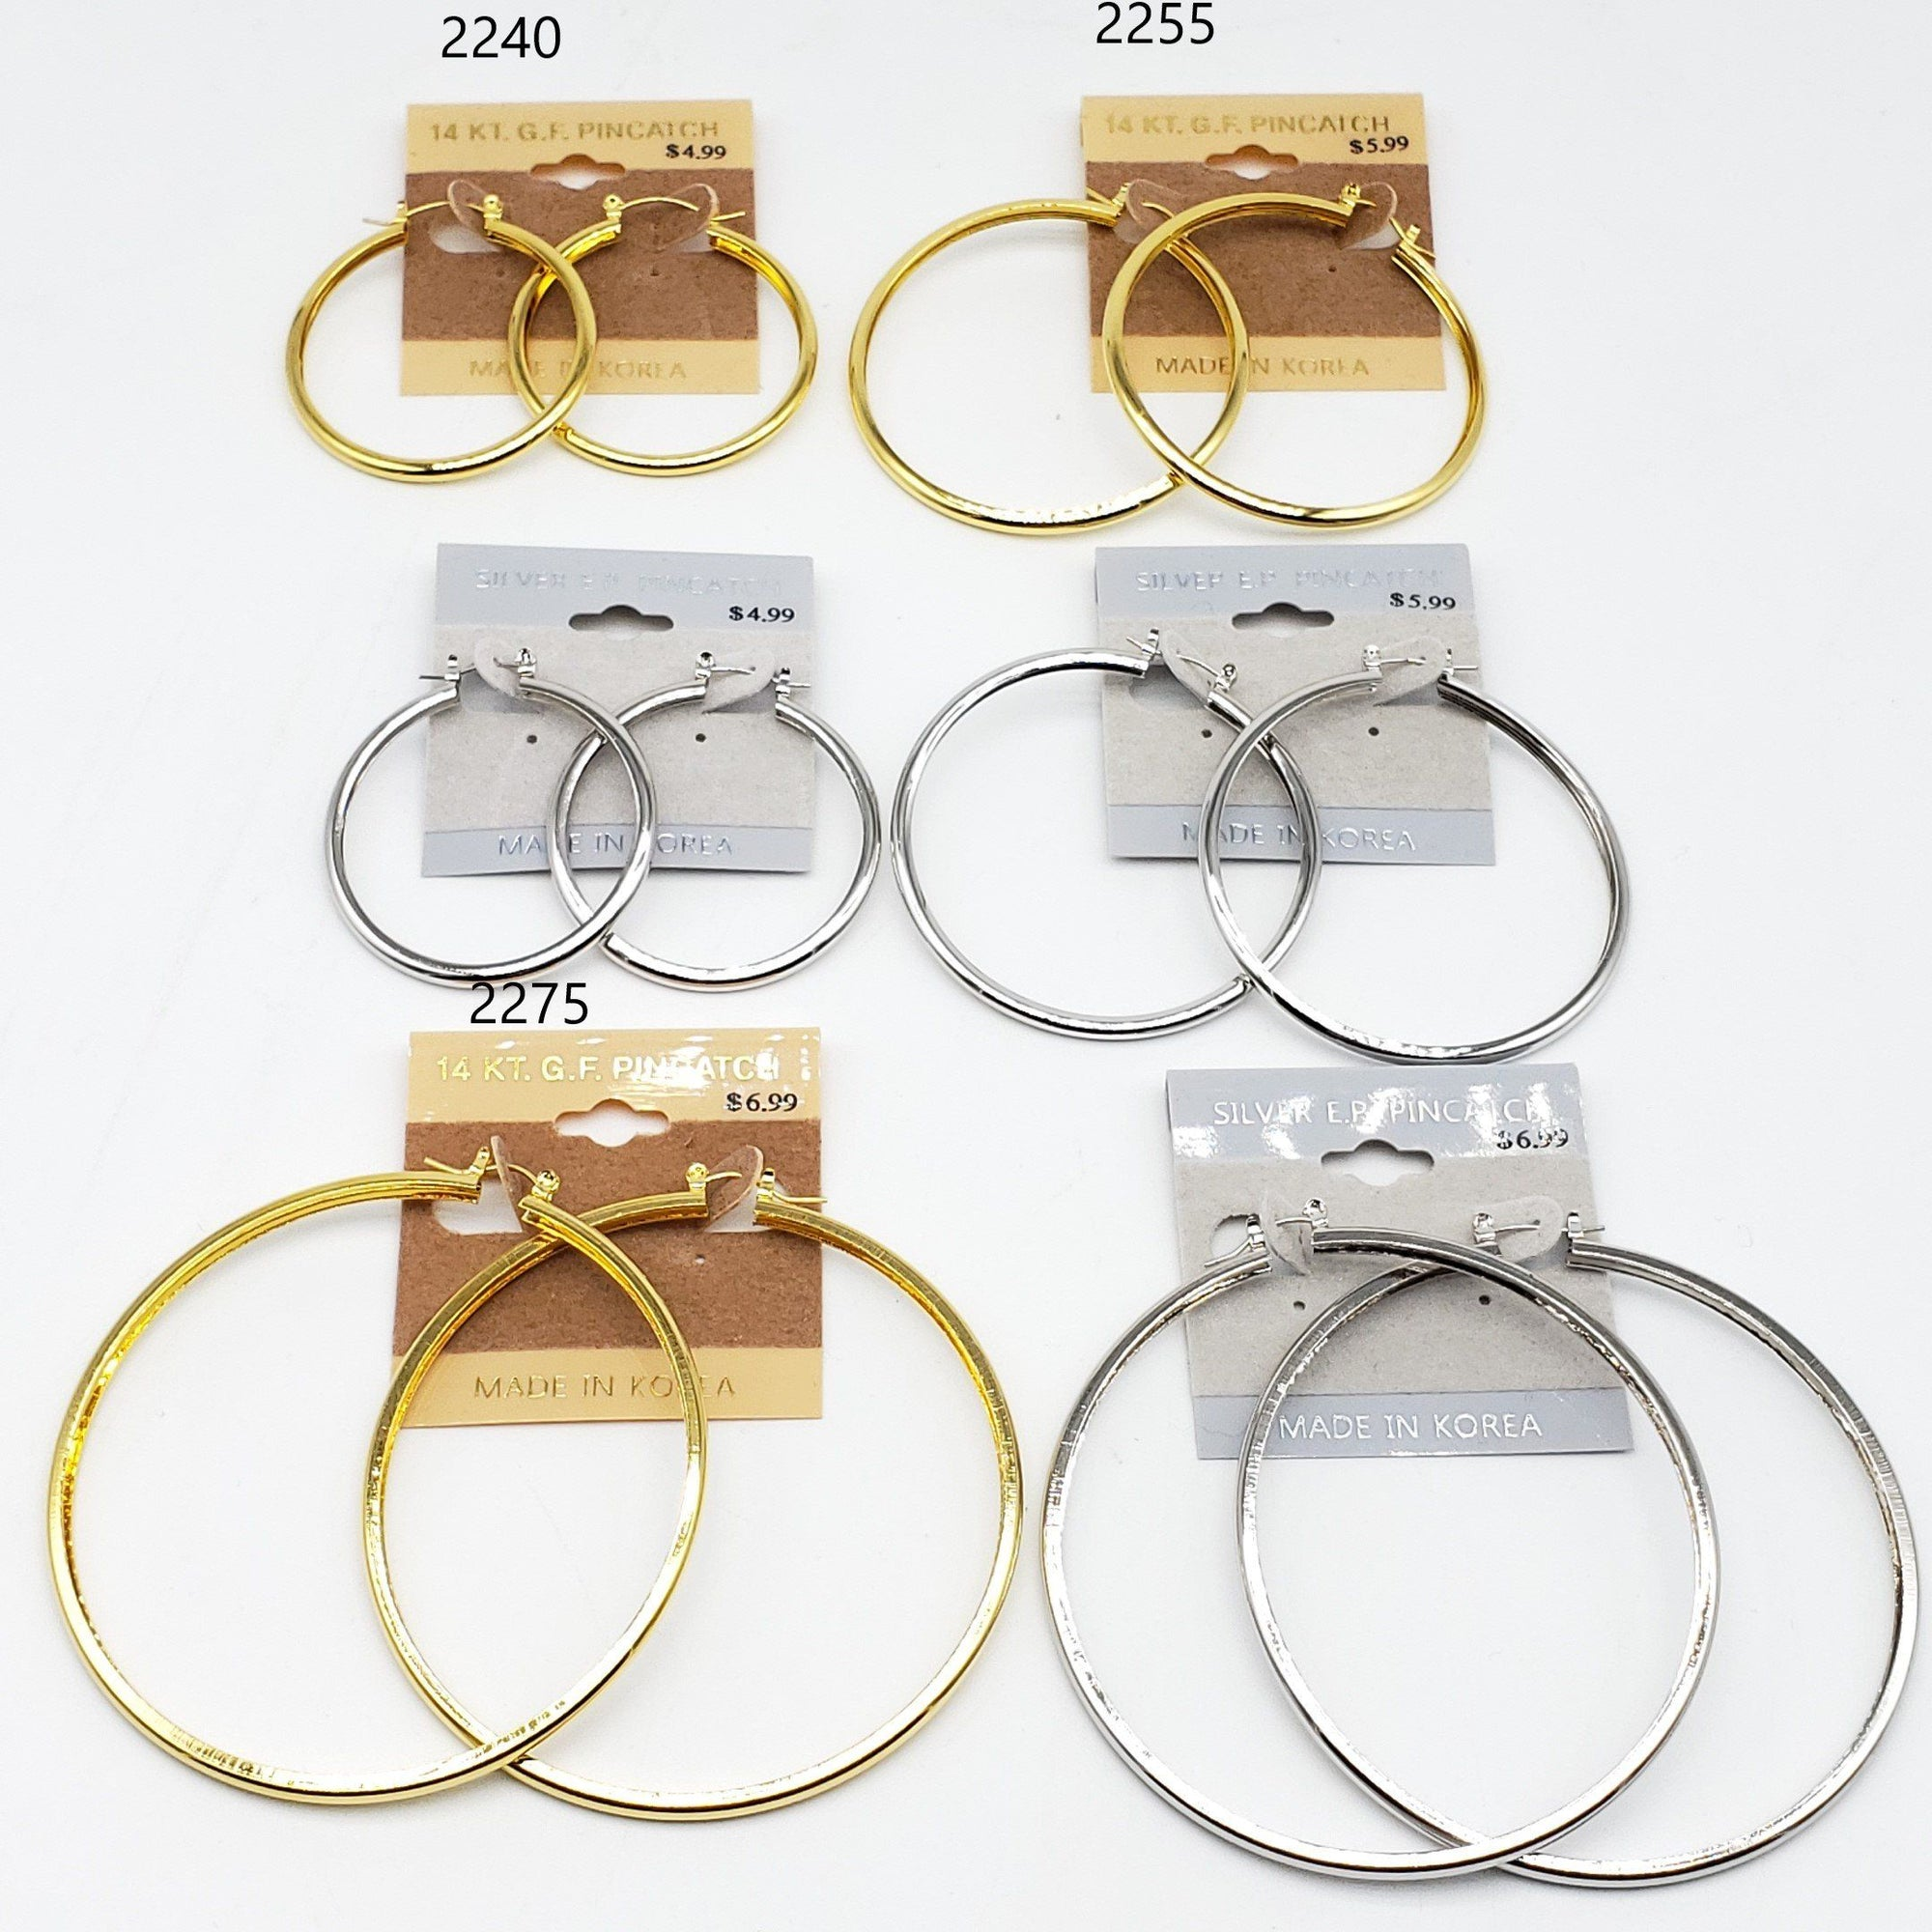 Gold/Silver Hoop Earrings #2240-2255-2275 (PC)